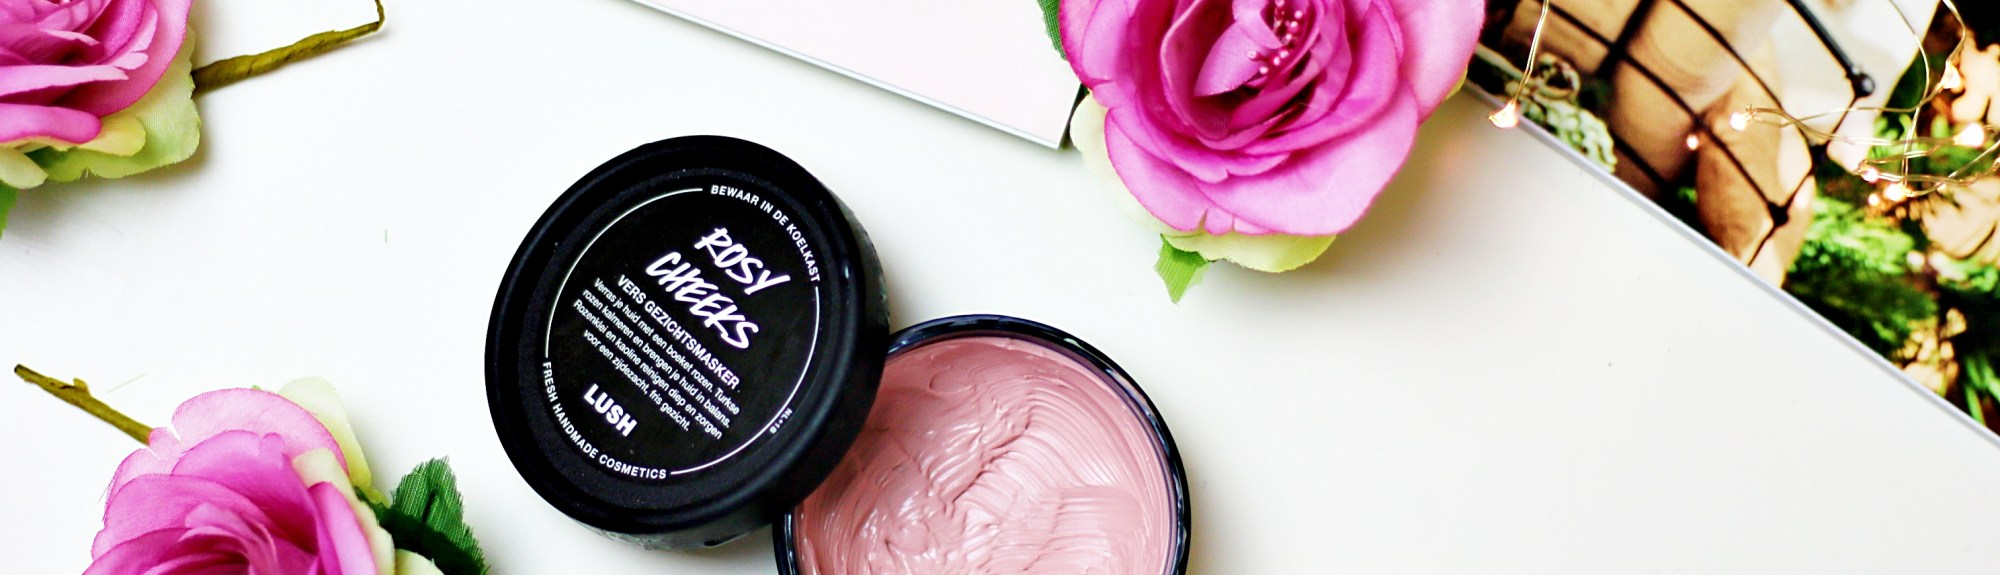 Lush Rosy Cheeks Fresh Face Mask